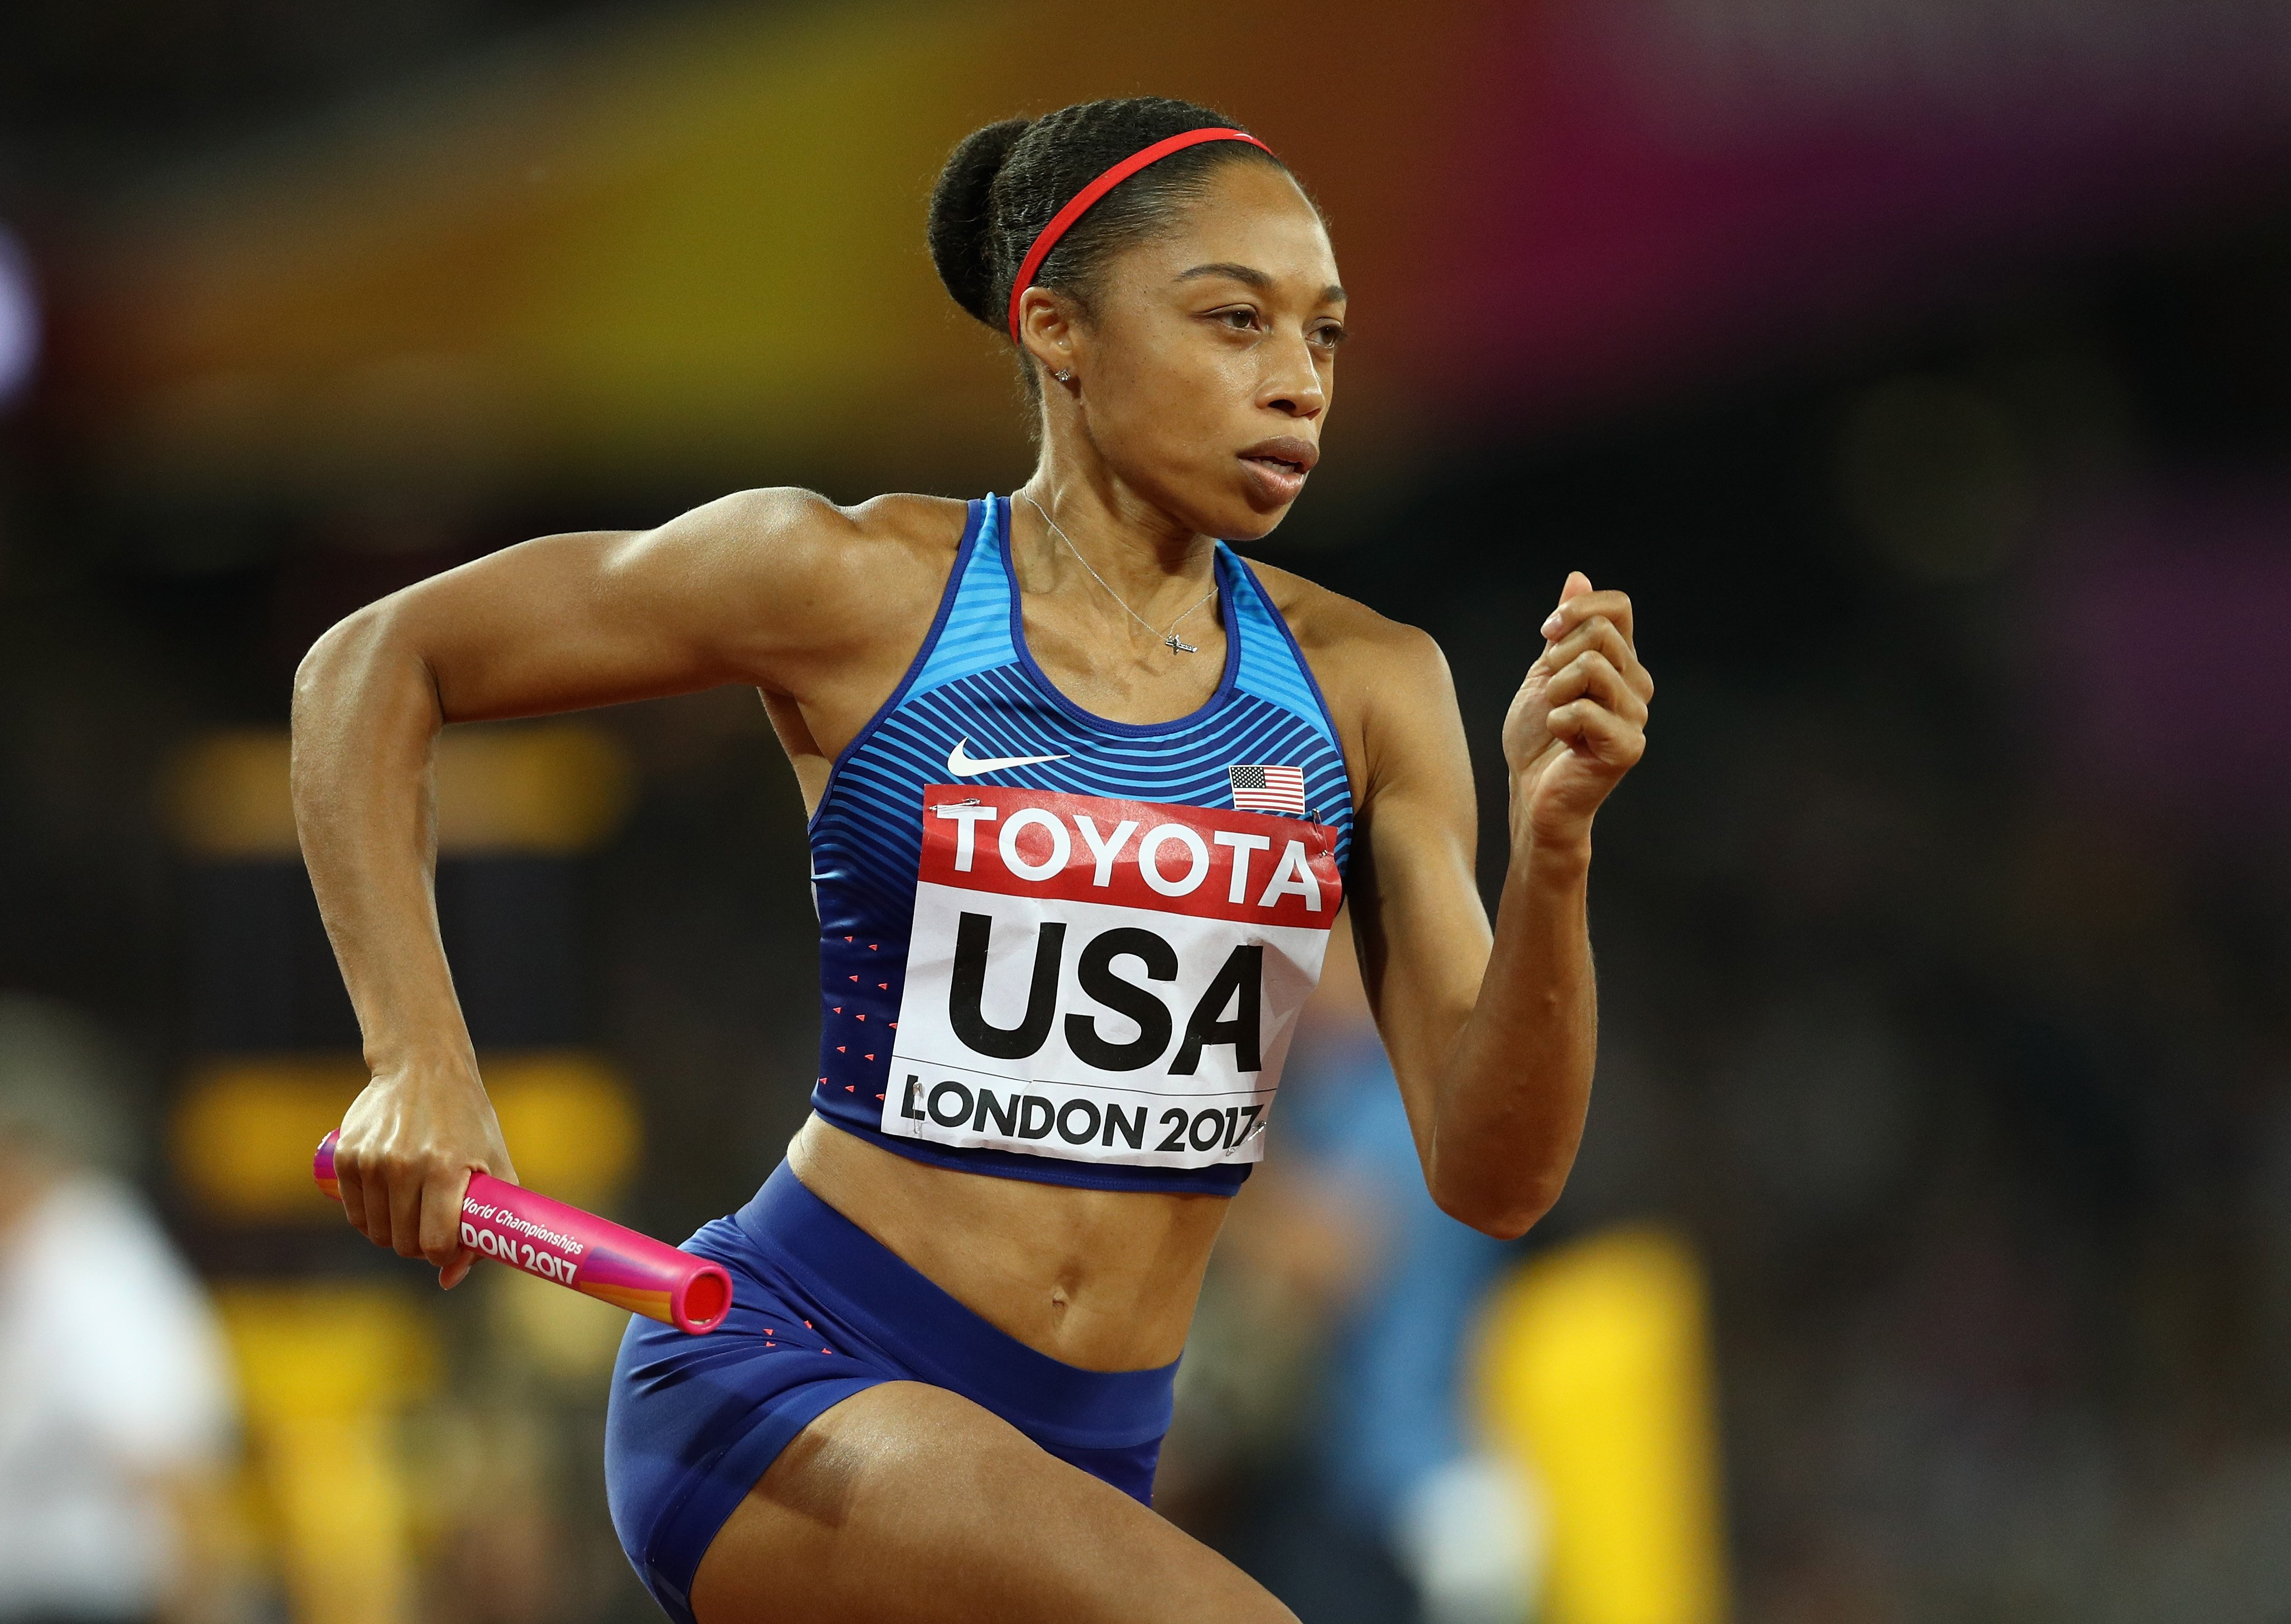 Allyson Felix during the Women's 4x400 Meters Relay final at the IAAF World Athletics Championships London on Aug. 13, 2017 | Photo: Getty Images